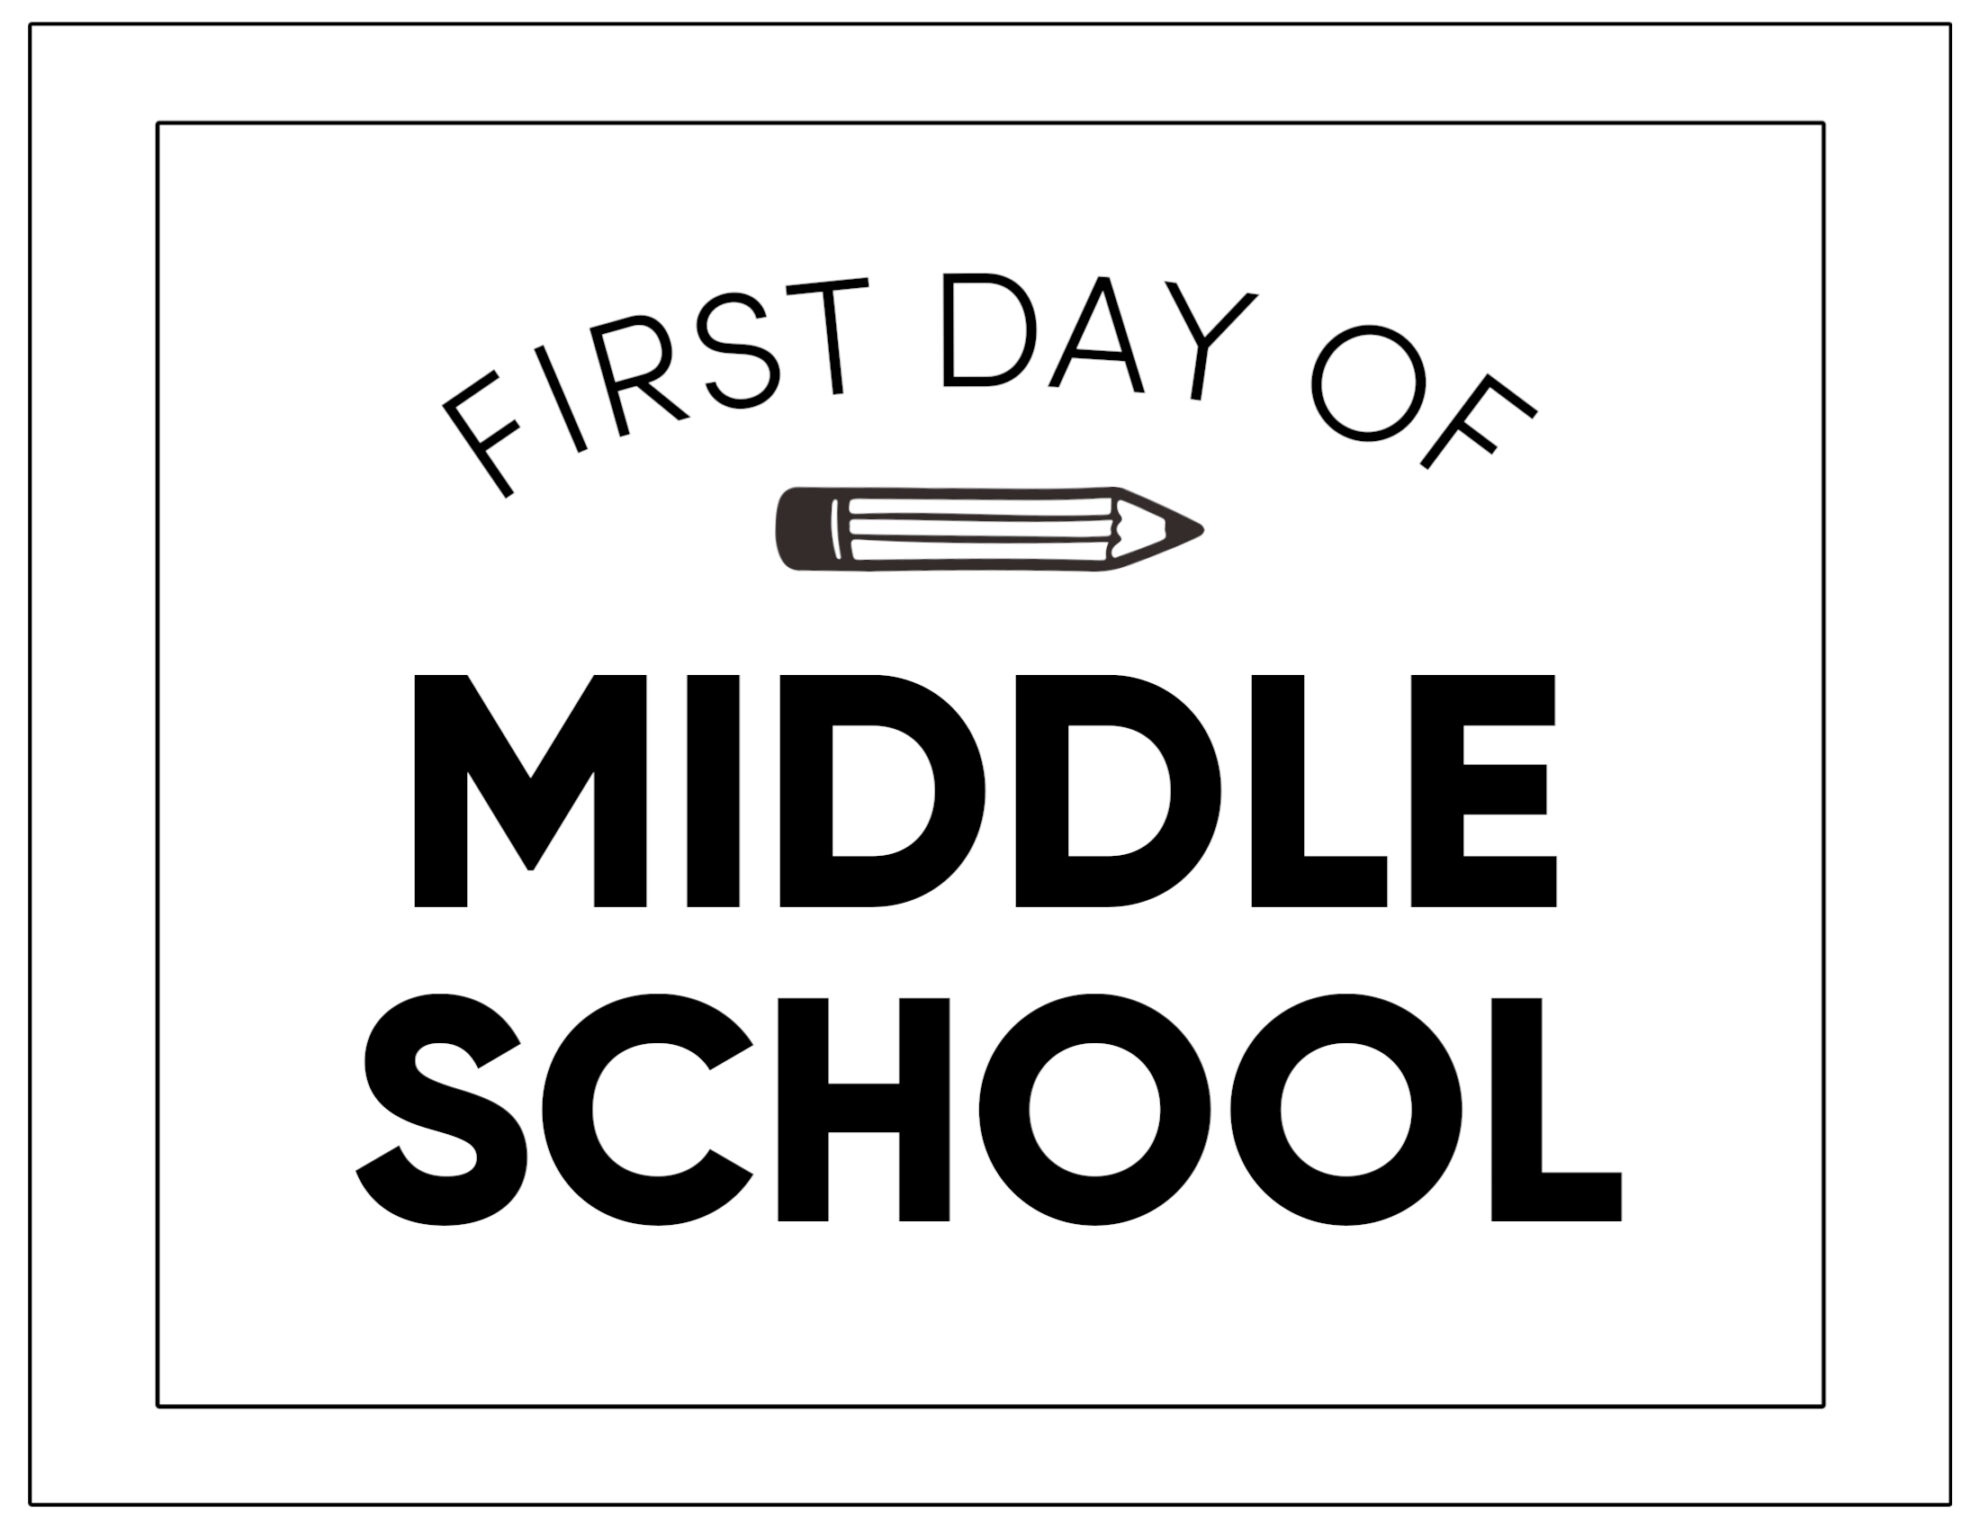 Printable First Day of School Signs | Paper Trail Design